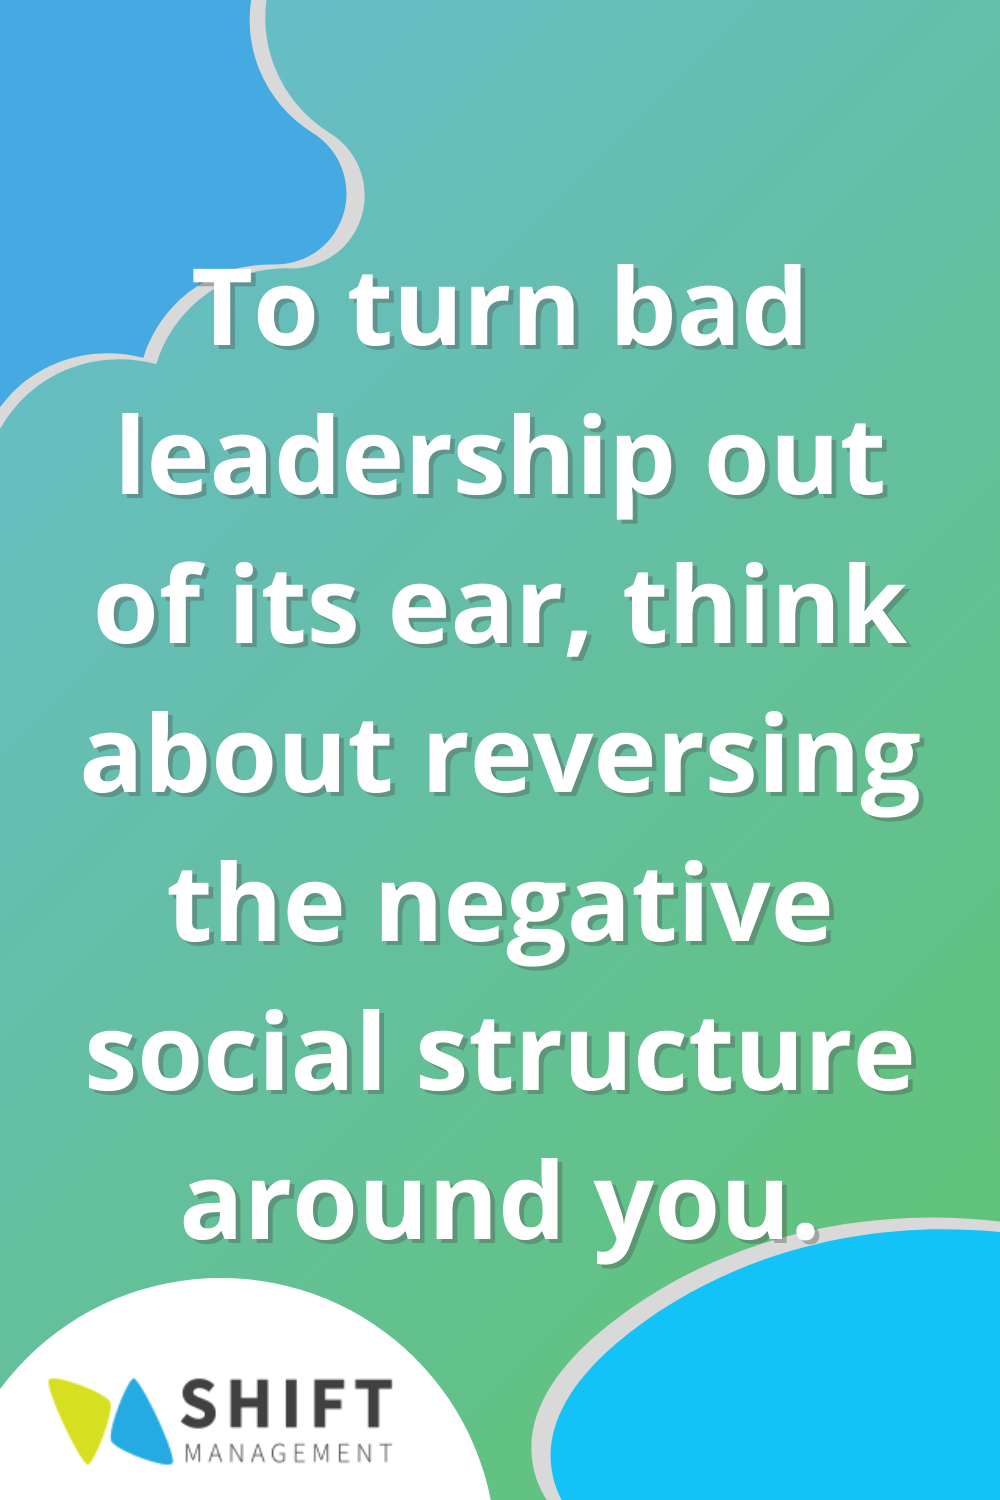 To turn bad leadership out of its ear, think about reversing the negative social structure around you